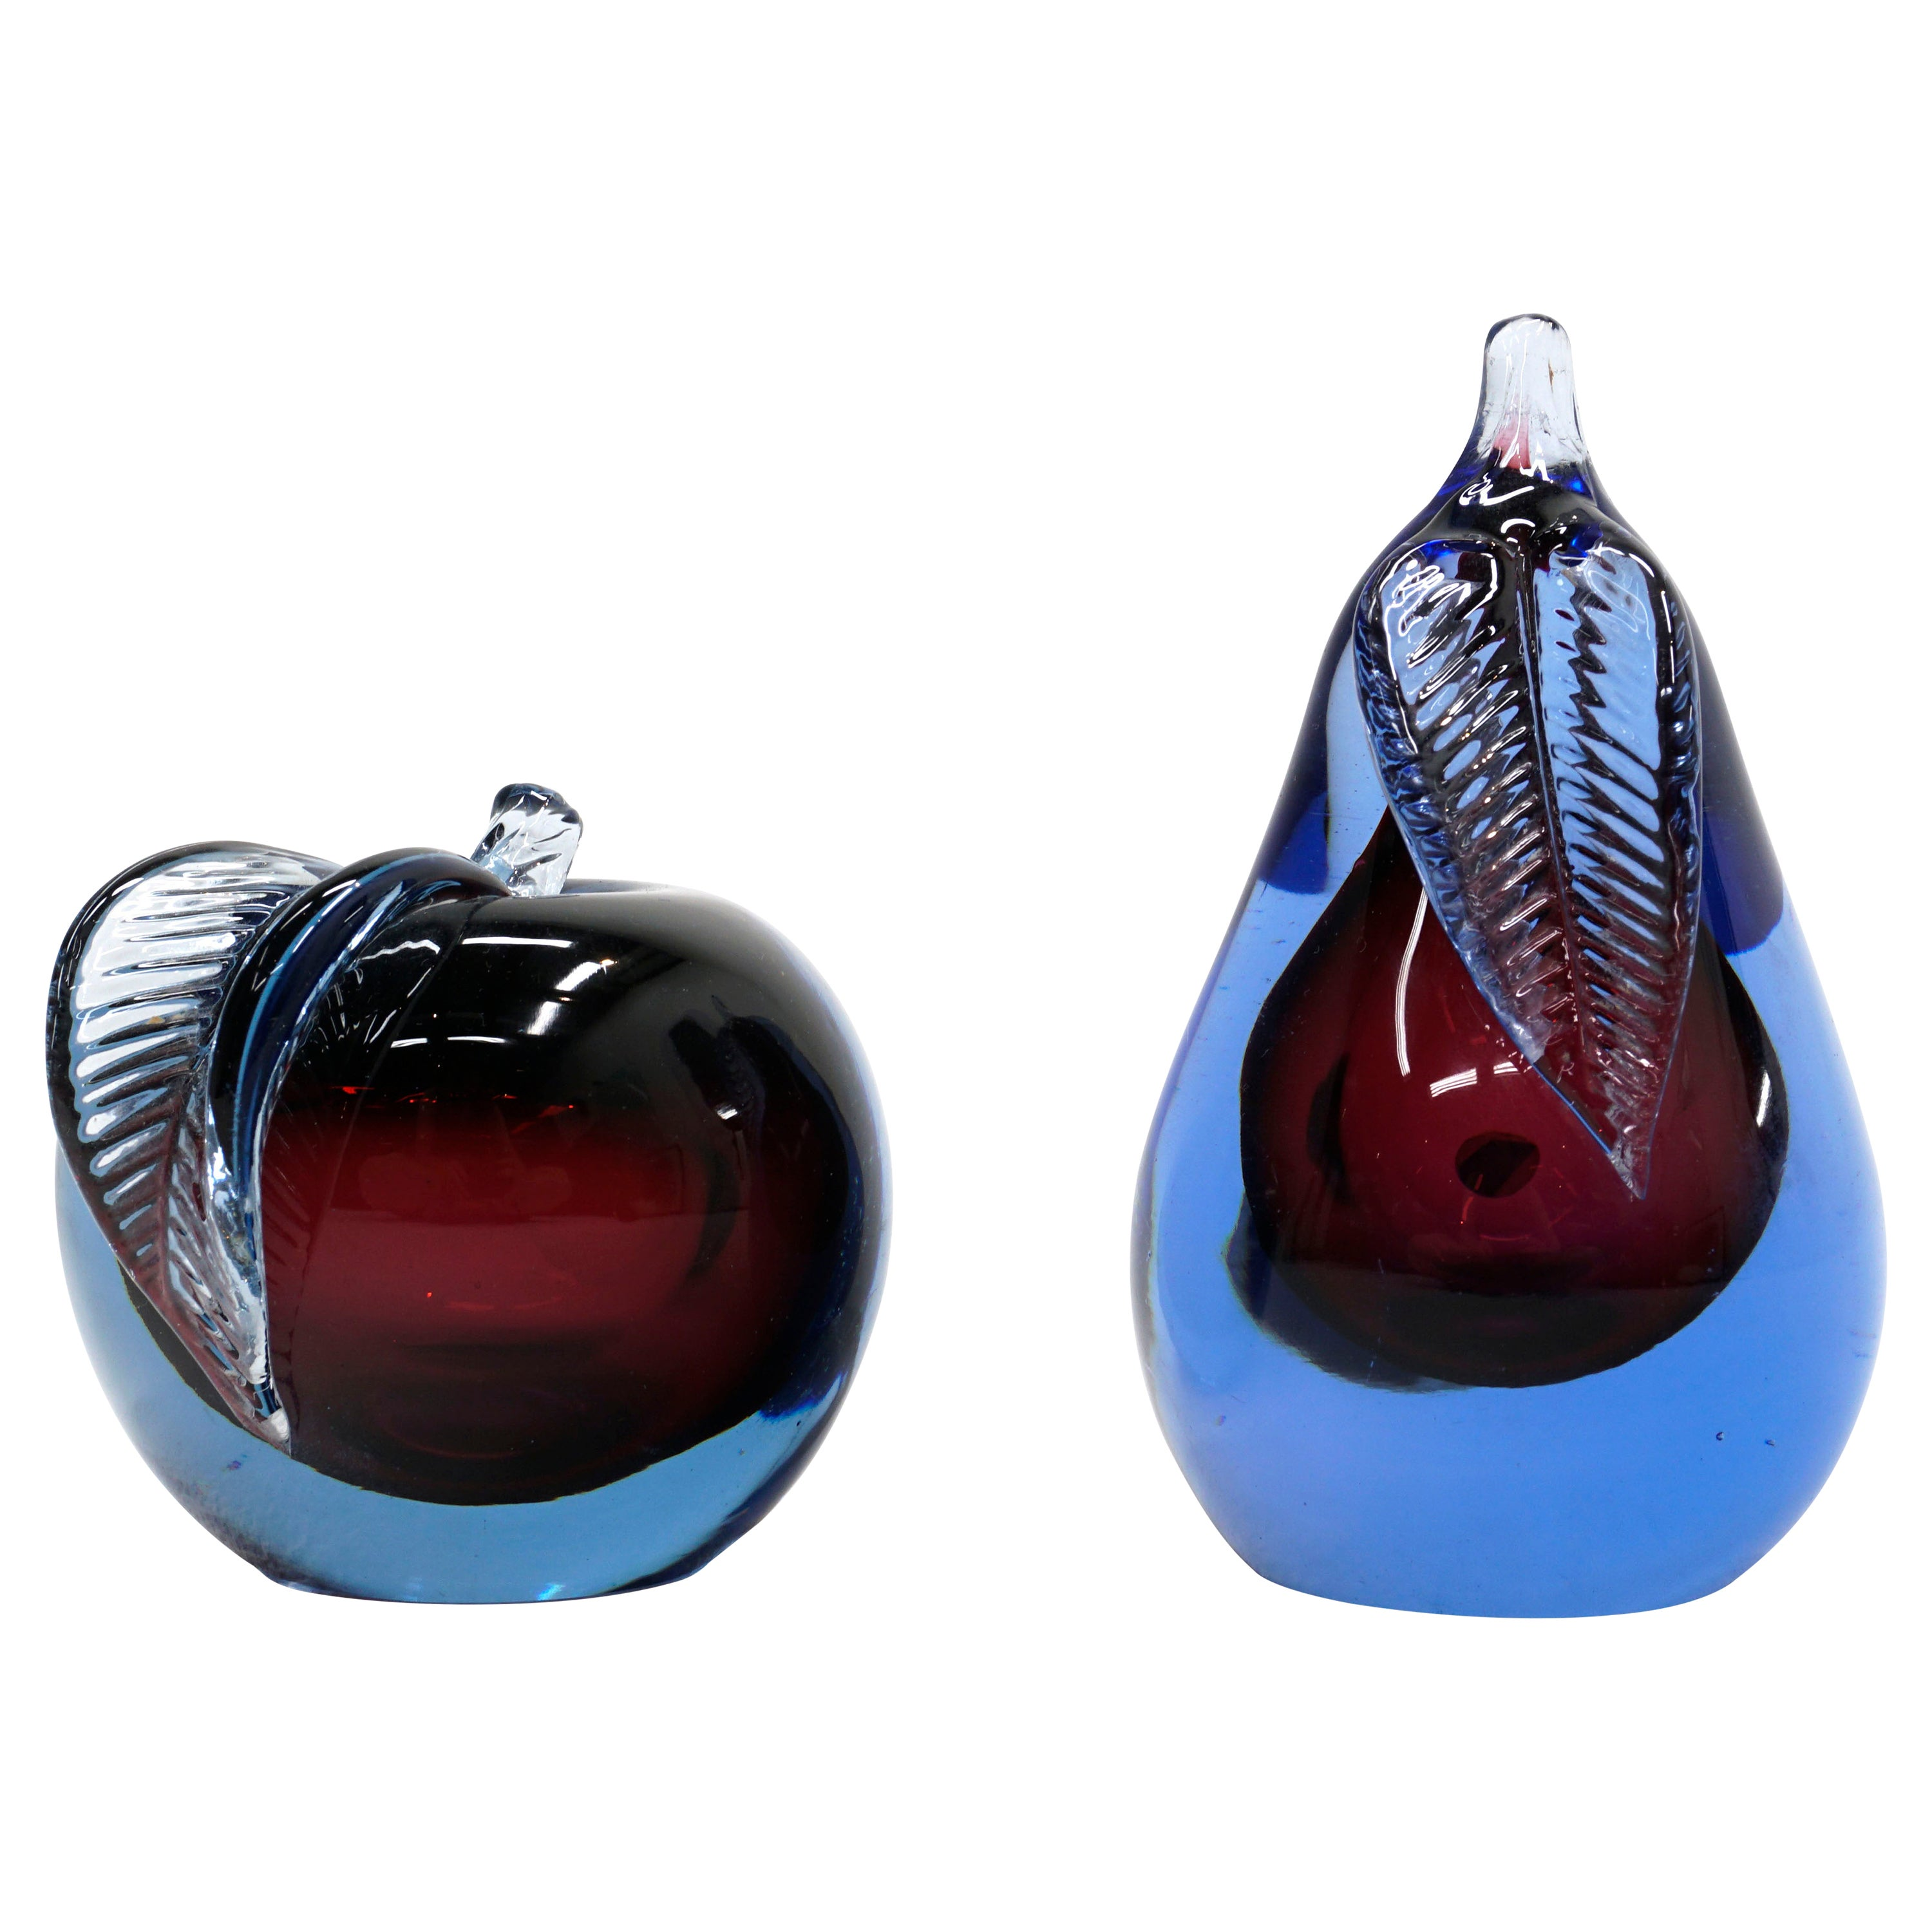 Murano Art Glass Apple and Pear, Hand Blown, Blue, Purple, Excellent Condition